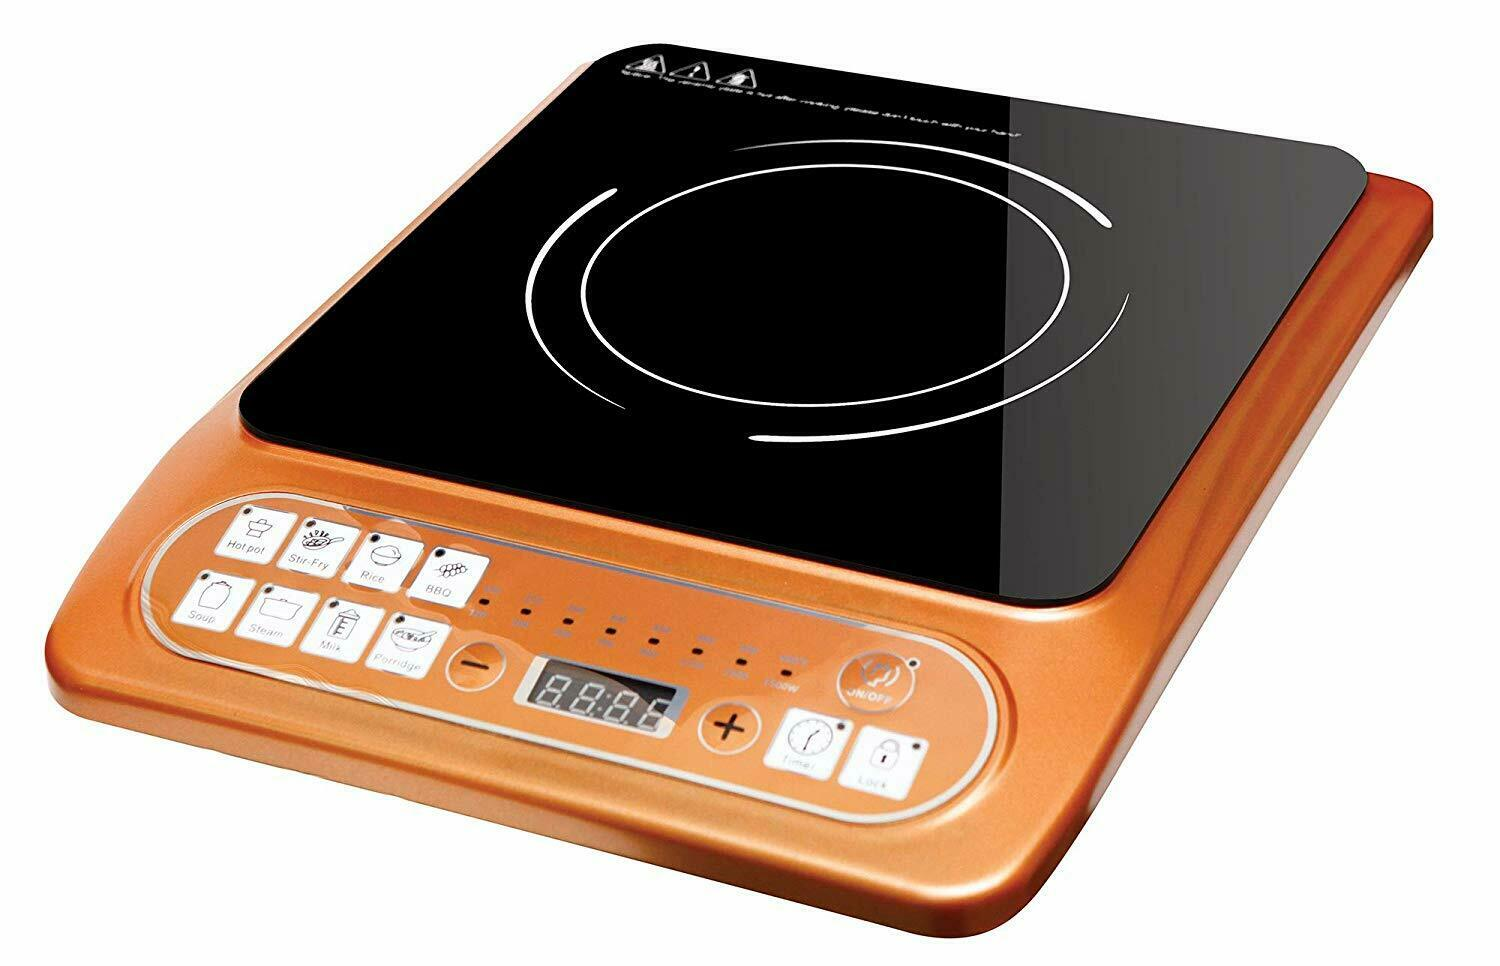 New Copper 8 in 1 Multi Function Cooking Induction Ceramic Cooktop 1500W